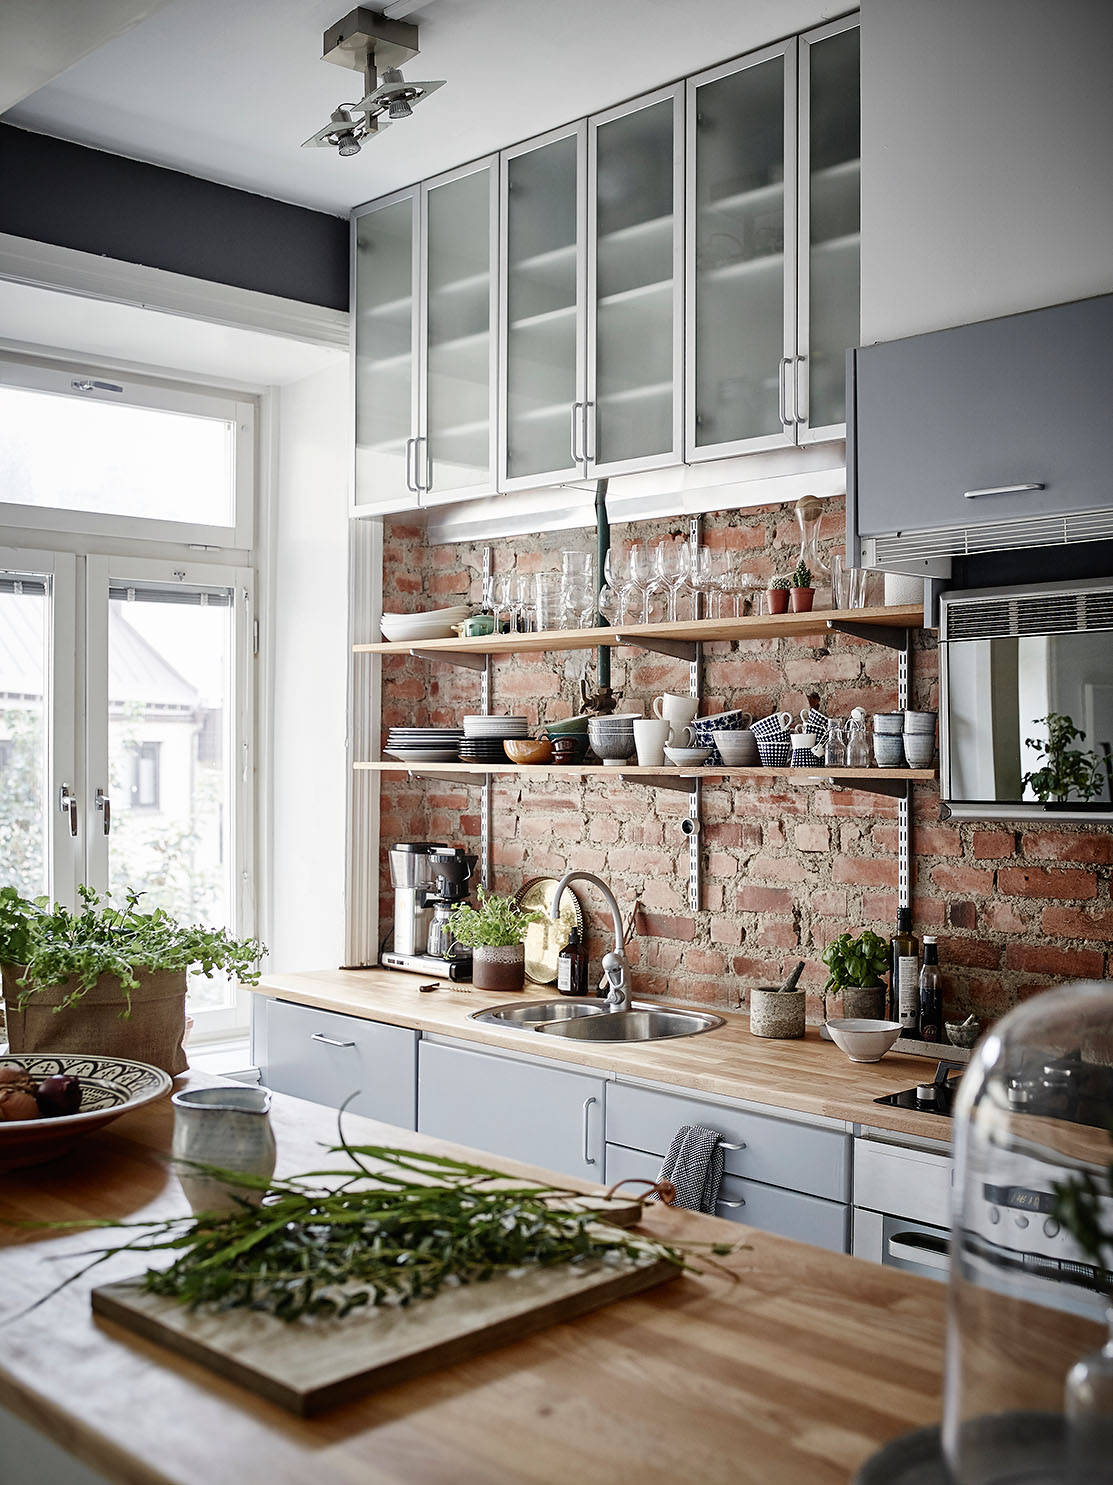 Cosy kitche interior · black kitchen furniture · red brick backsplash · kitchen brick wall